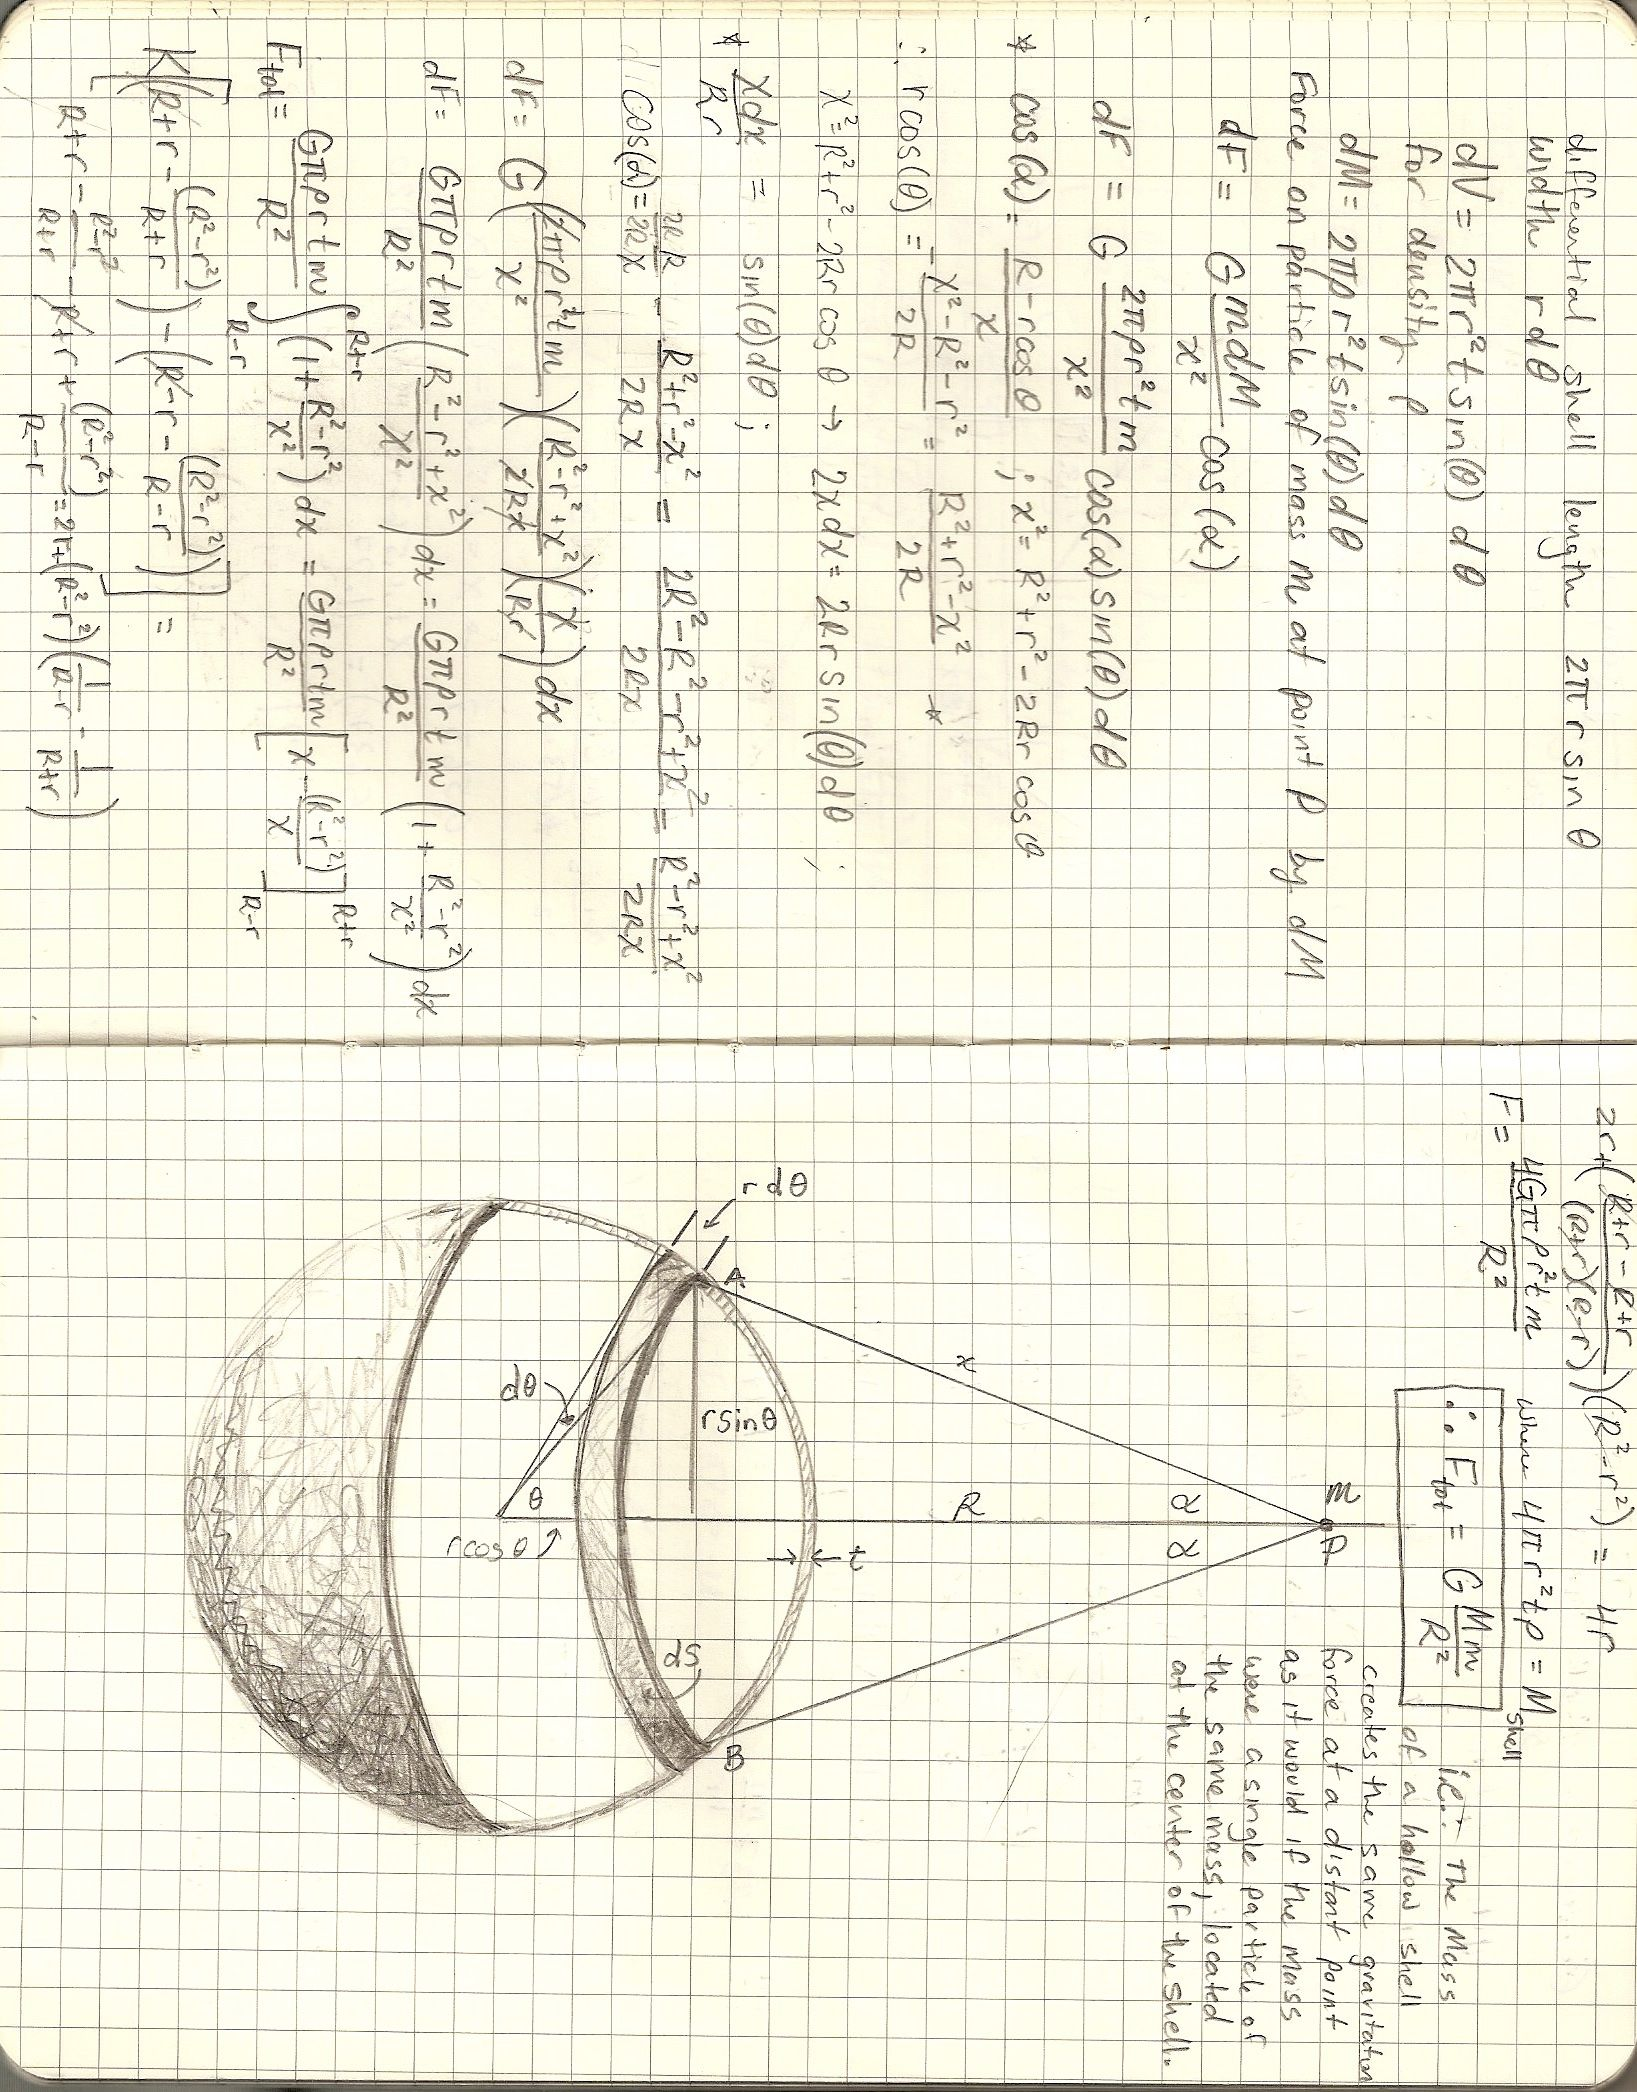 Derivation Showing Gravitational Force From A Spherical